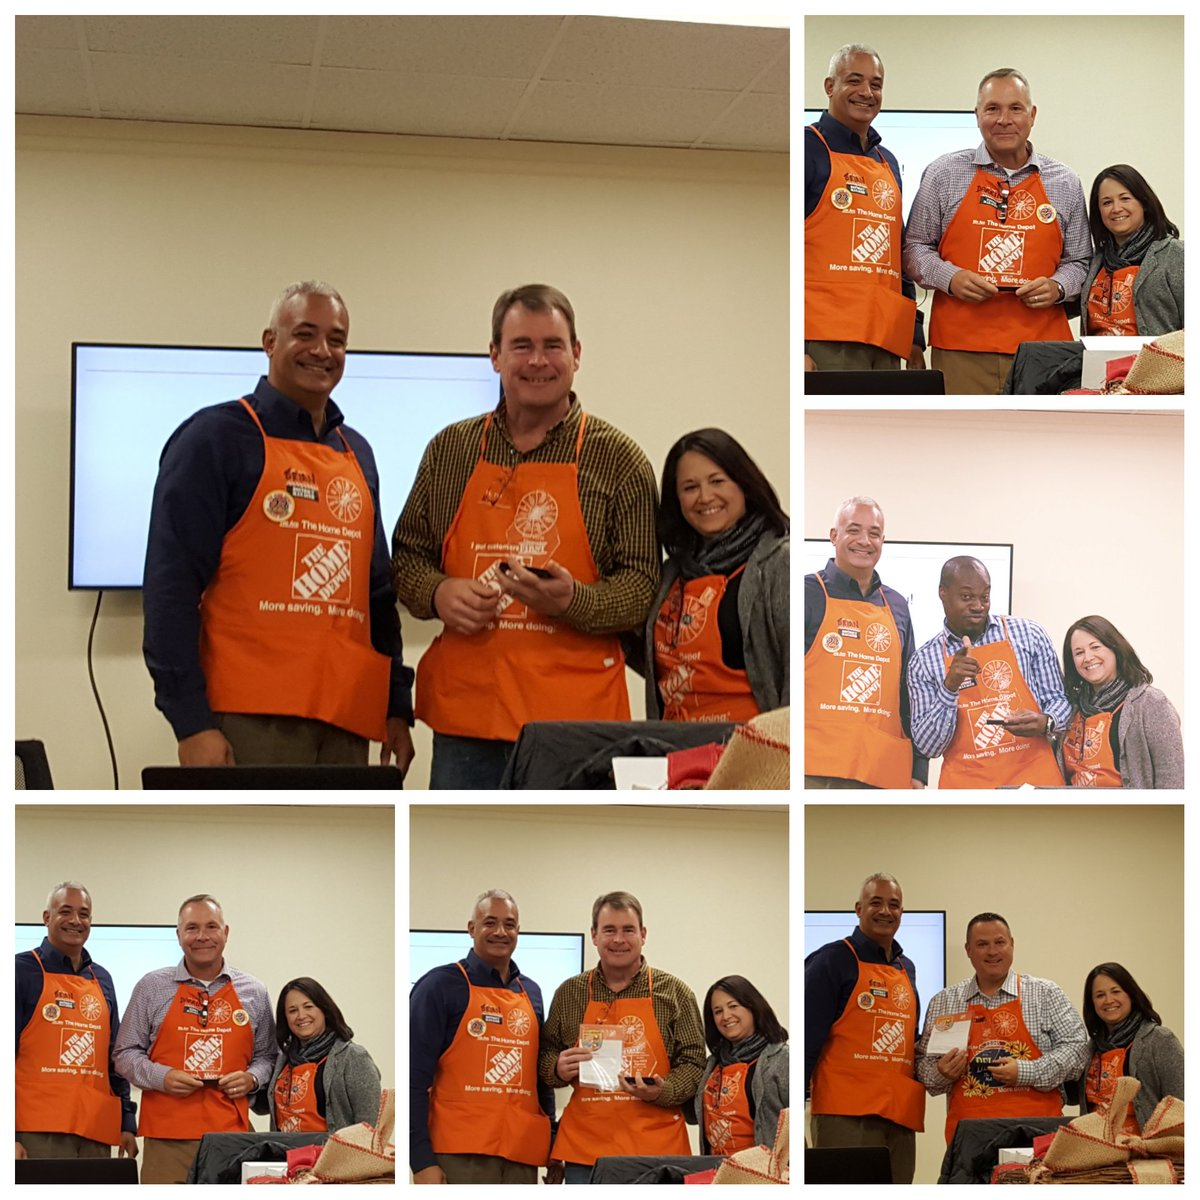 More #Recognition from today&#39;s meeting #BestSales #BestProCCS #BestOnlineSat #BestScop #BestLTSA #BestSpecialtySales for Q3 rocked it out team congrats @b_mungul<br>http://pic.twitter.com/qepohJ9409 &ndash; à The Home Depot